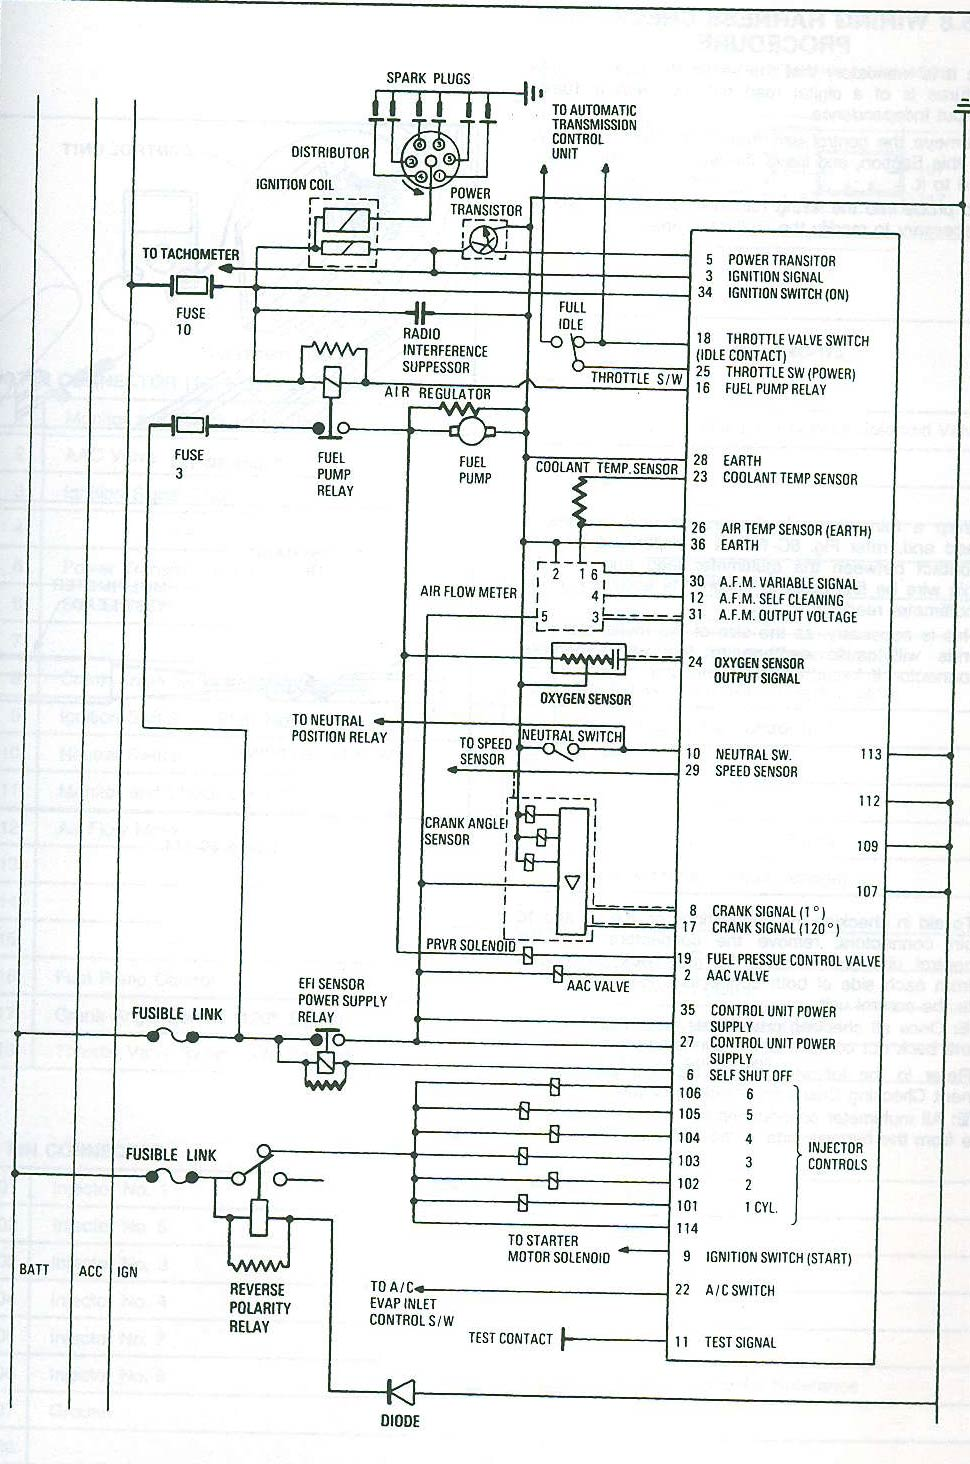 vn alternator wiring diagram [ 970 x 1464 Pixel ]